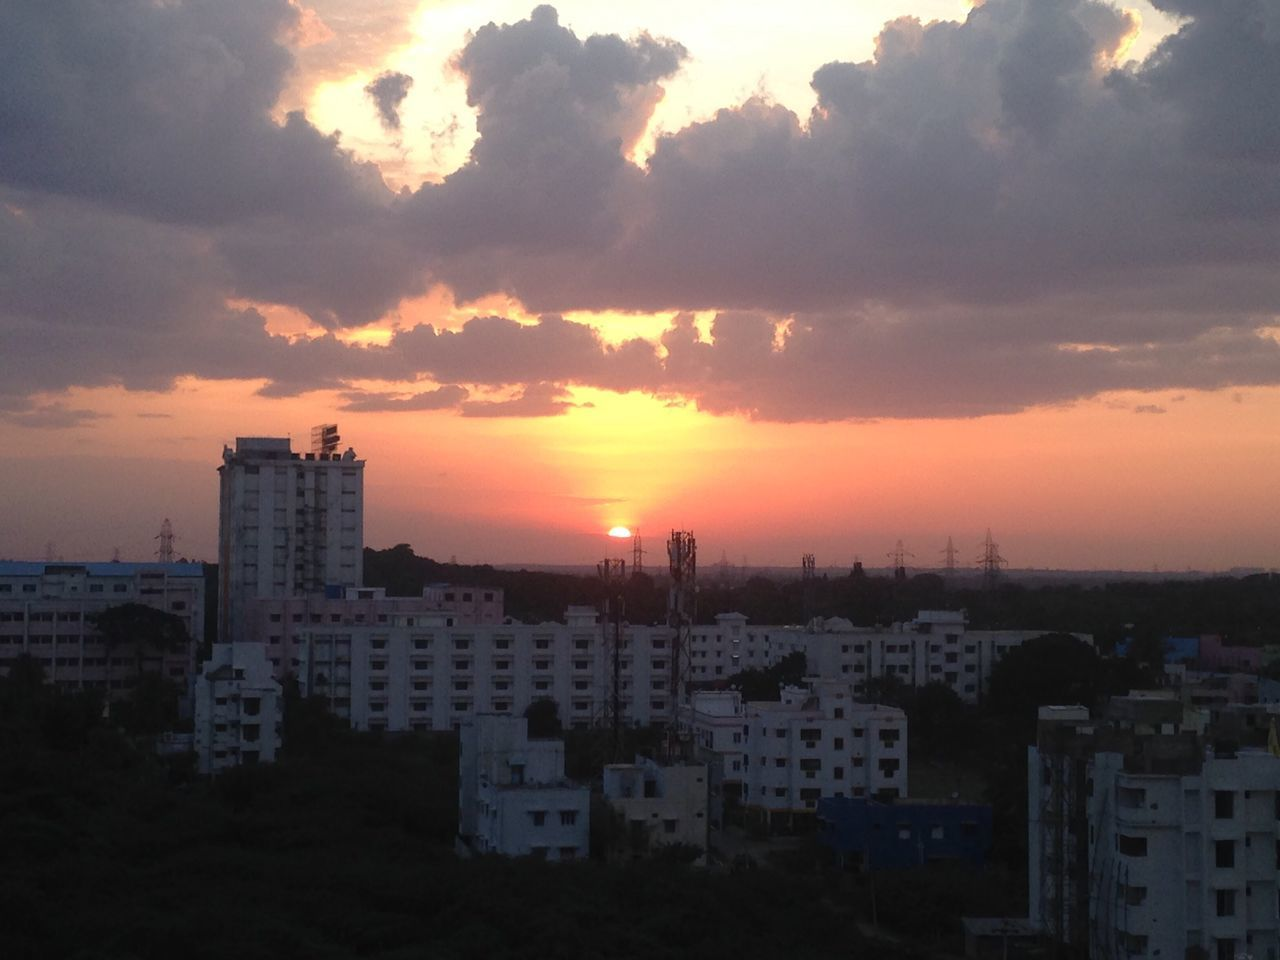 architecture, building exterior, built structure, sunset, cityscape, city, sky, cloud - sky, no people, residential building, skyscraper, outdoors, modern, nature, residential, day